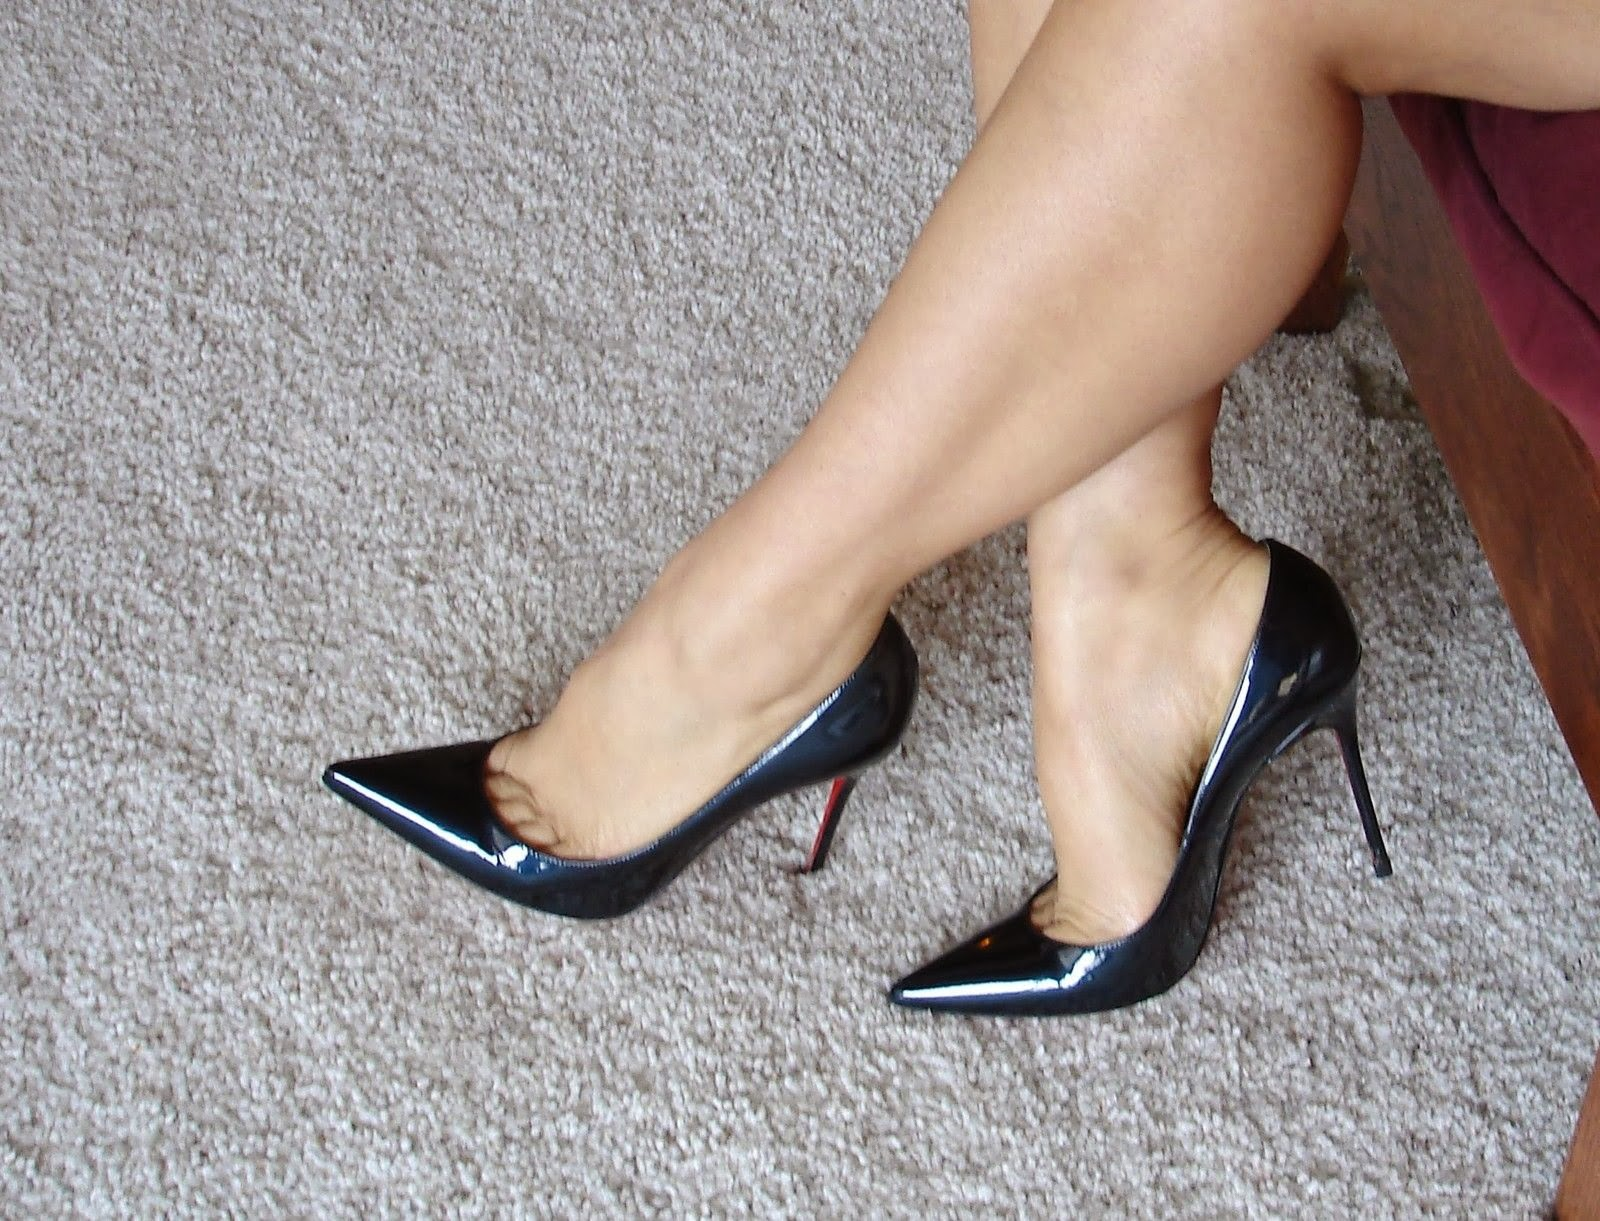 image 6 inch heels dangling full hd preview of my website